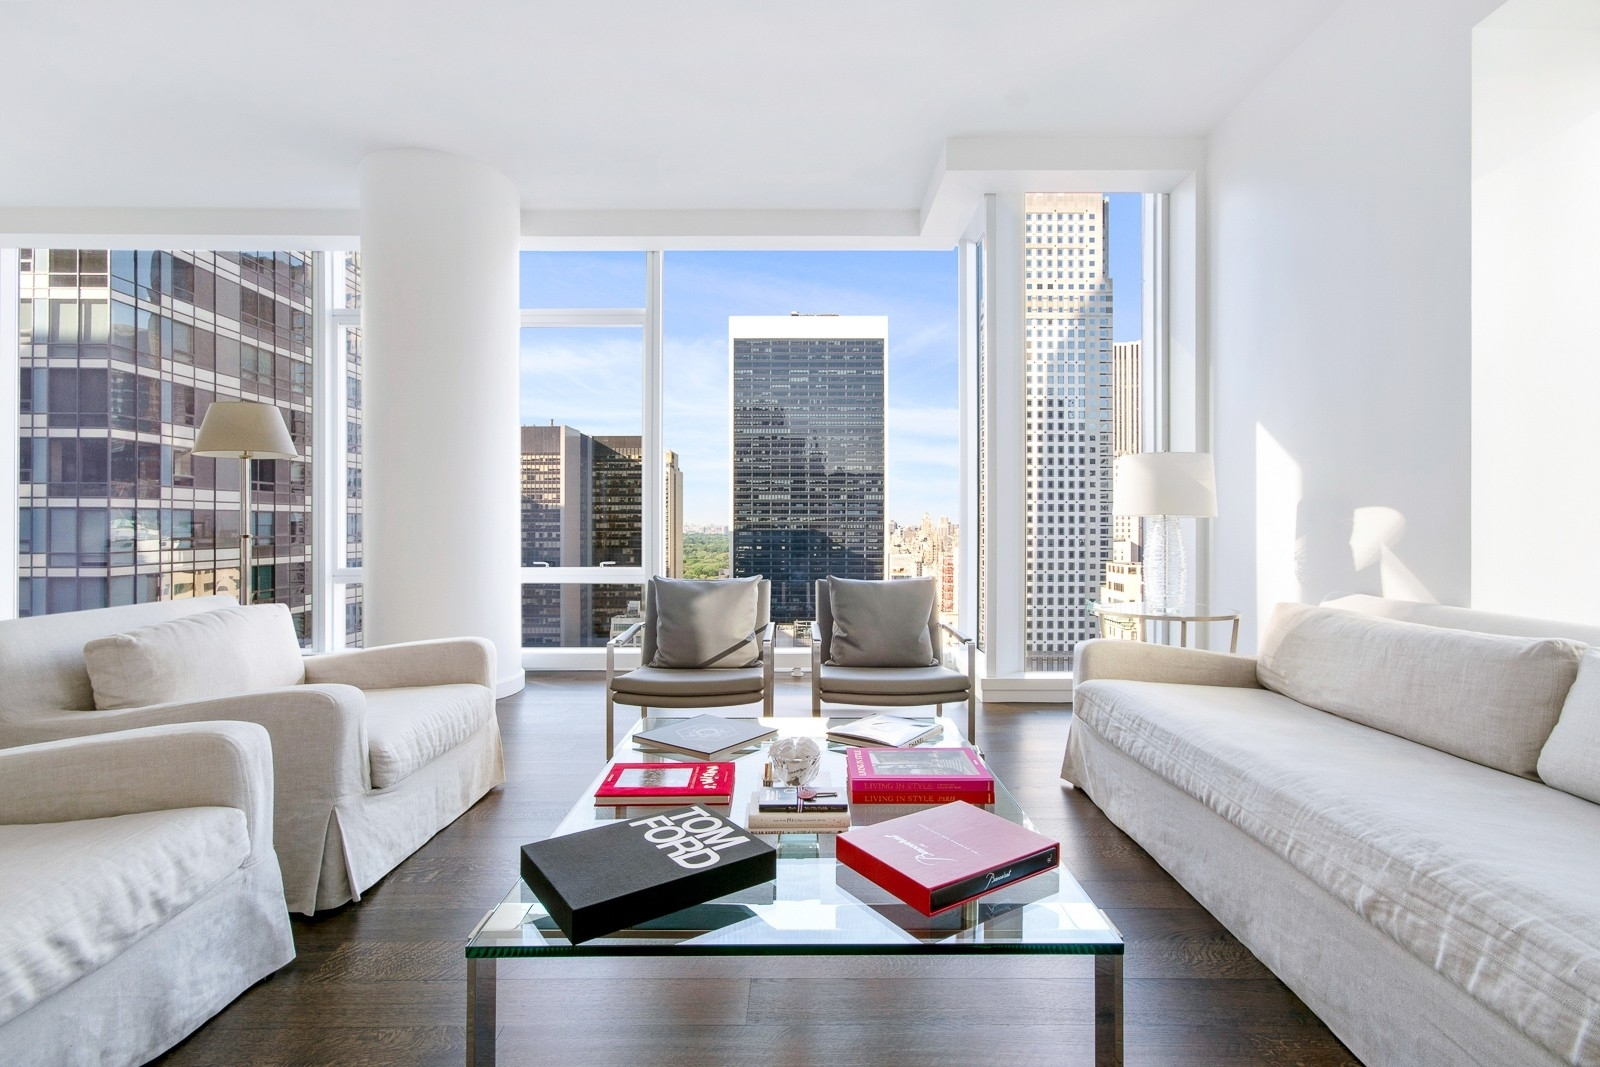 Property at BACCARAT HOTEL & RESIDENCES, 20 West 53rd St, 29A Midtown West, New York, NY 10019